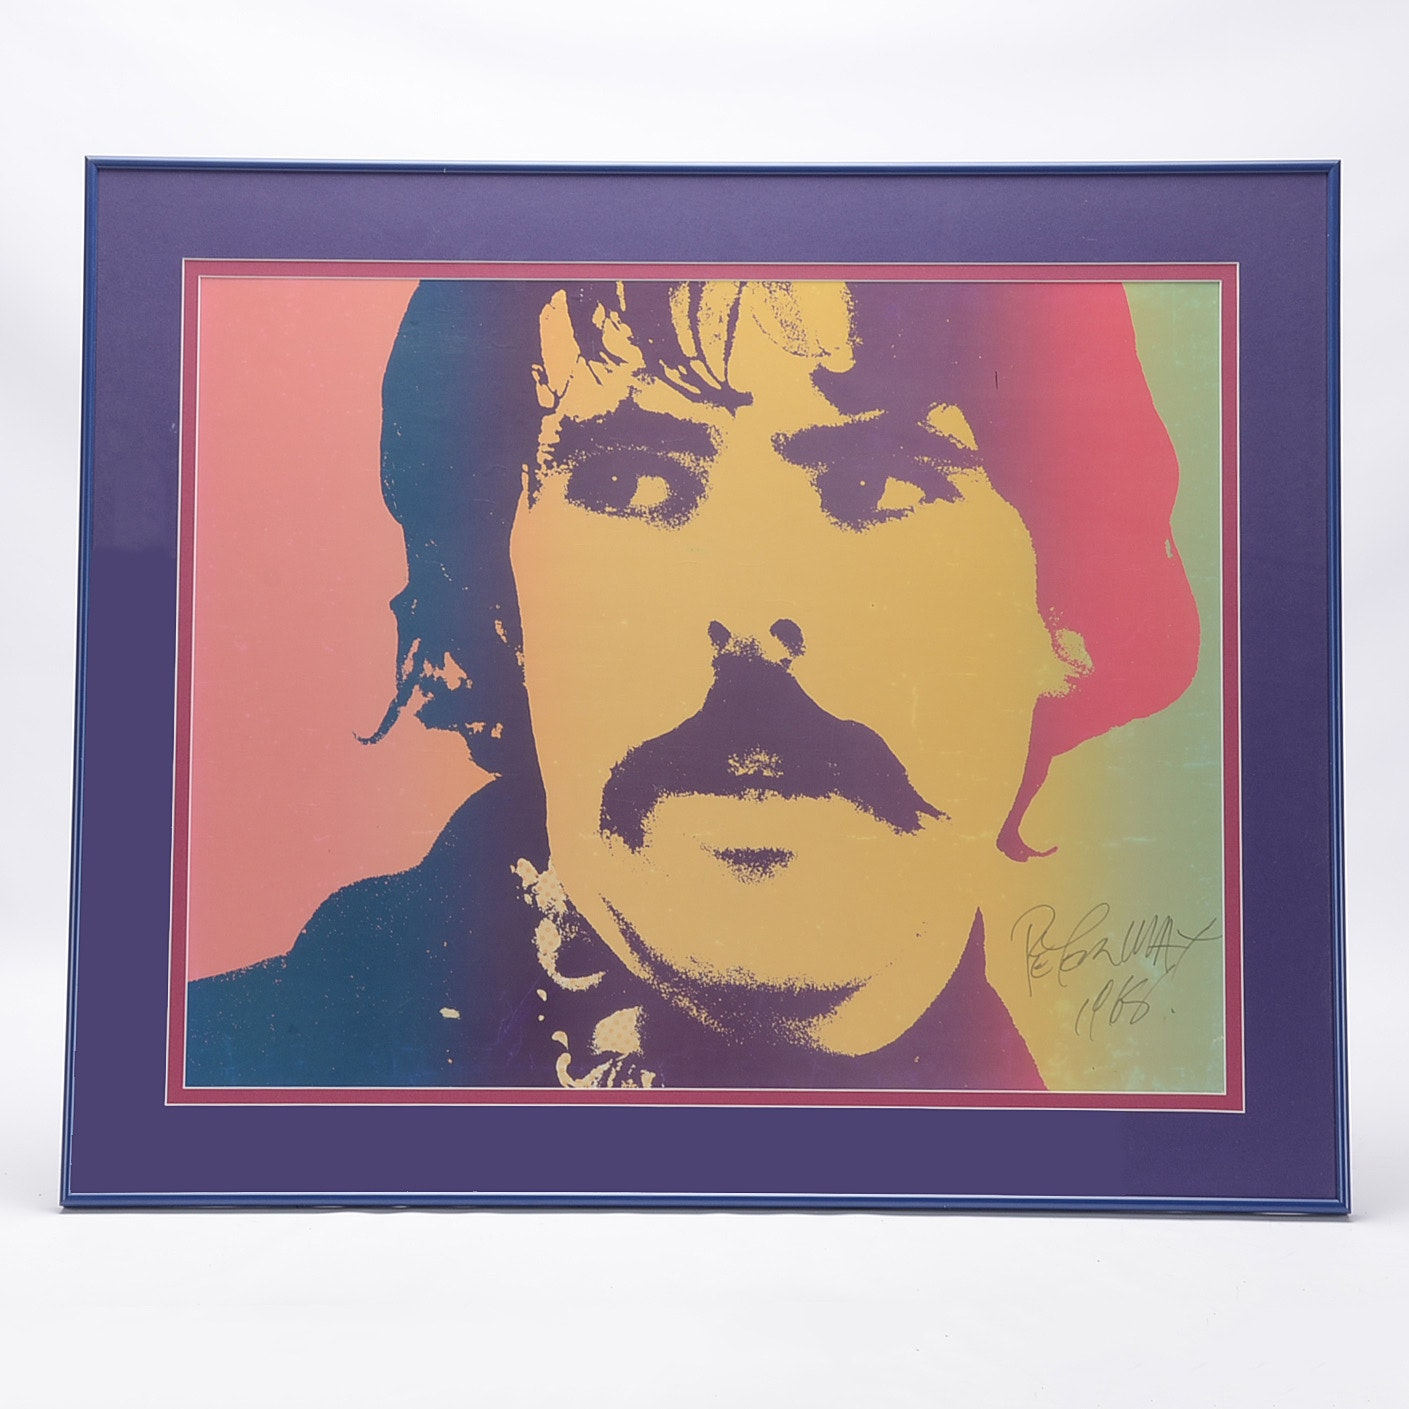 Peter Max Original Signed Self-Portrait Lithograph